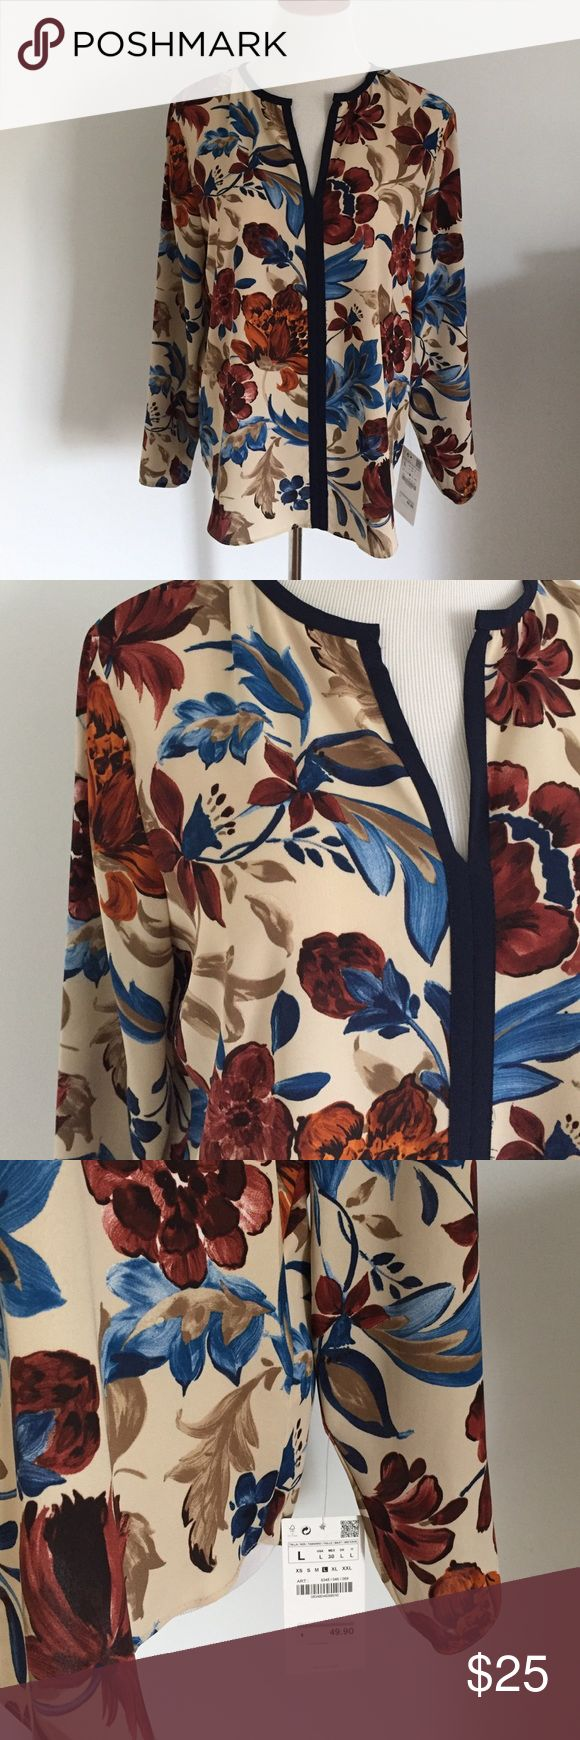 Zara Blue Brown Beige Blouse NWT Beautiful Blue floral split neck top. Zara Tops Blouses